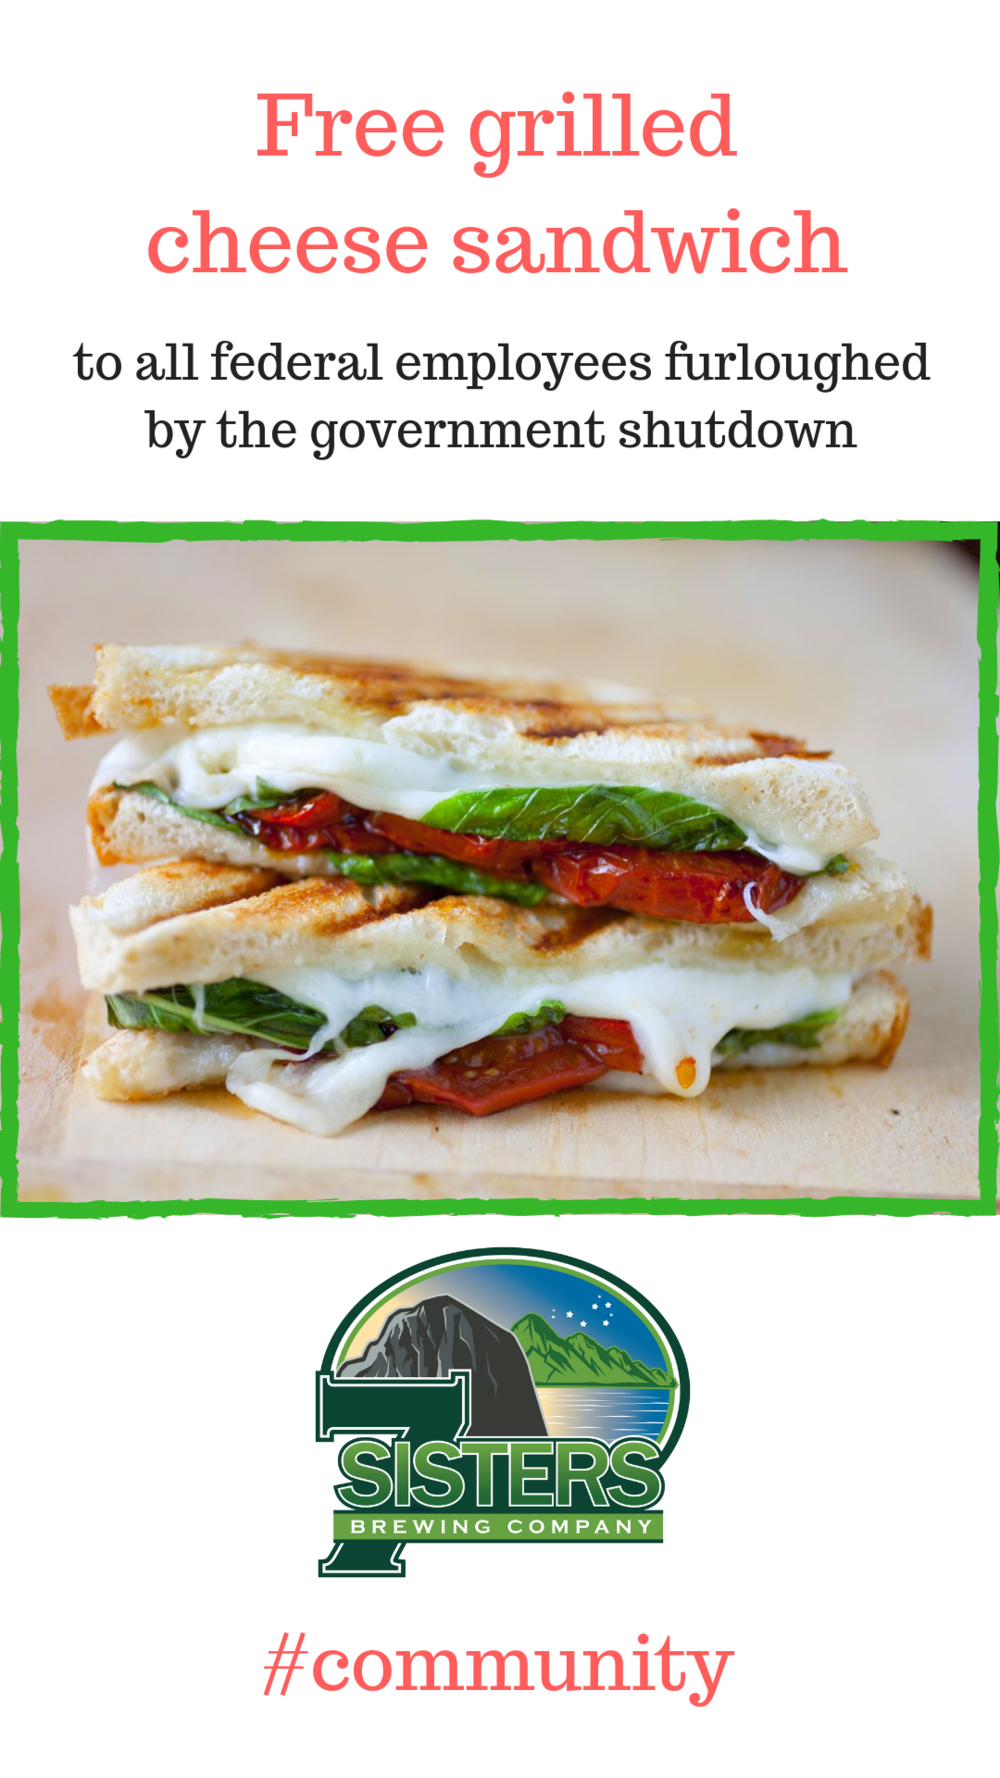 Gourmet grilled cheese sandwiches are free to furloughed federal employees for as long as the 2018-19 government shutdown lasts